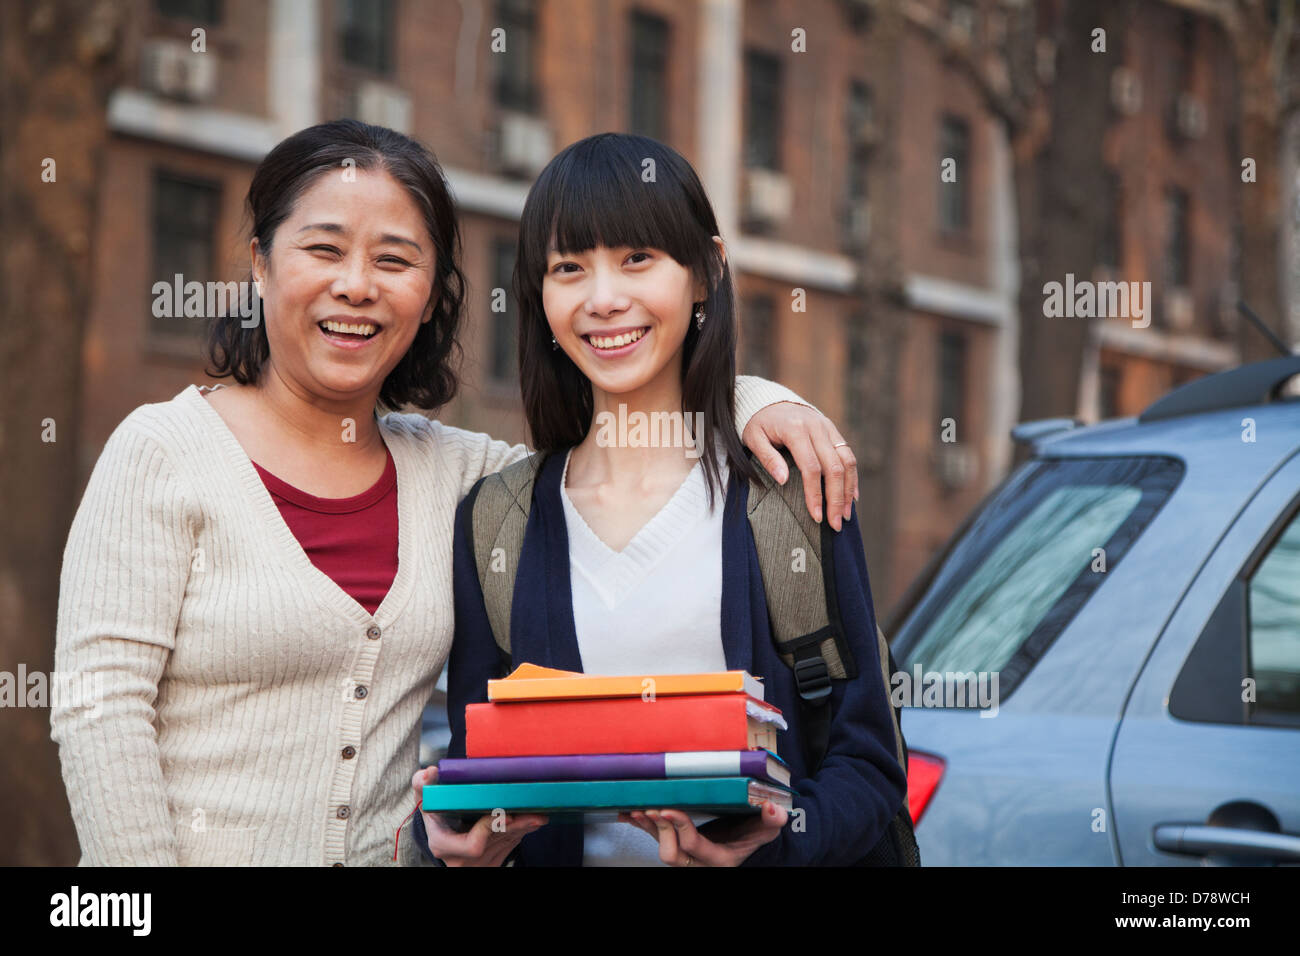 Mother and daughter portrait in front of dormitory - Stock Image